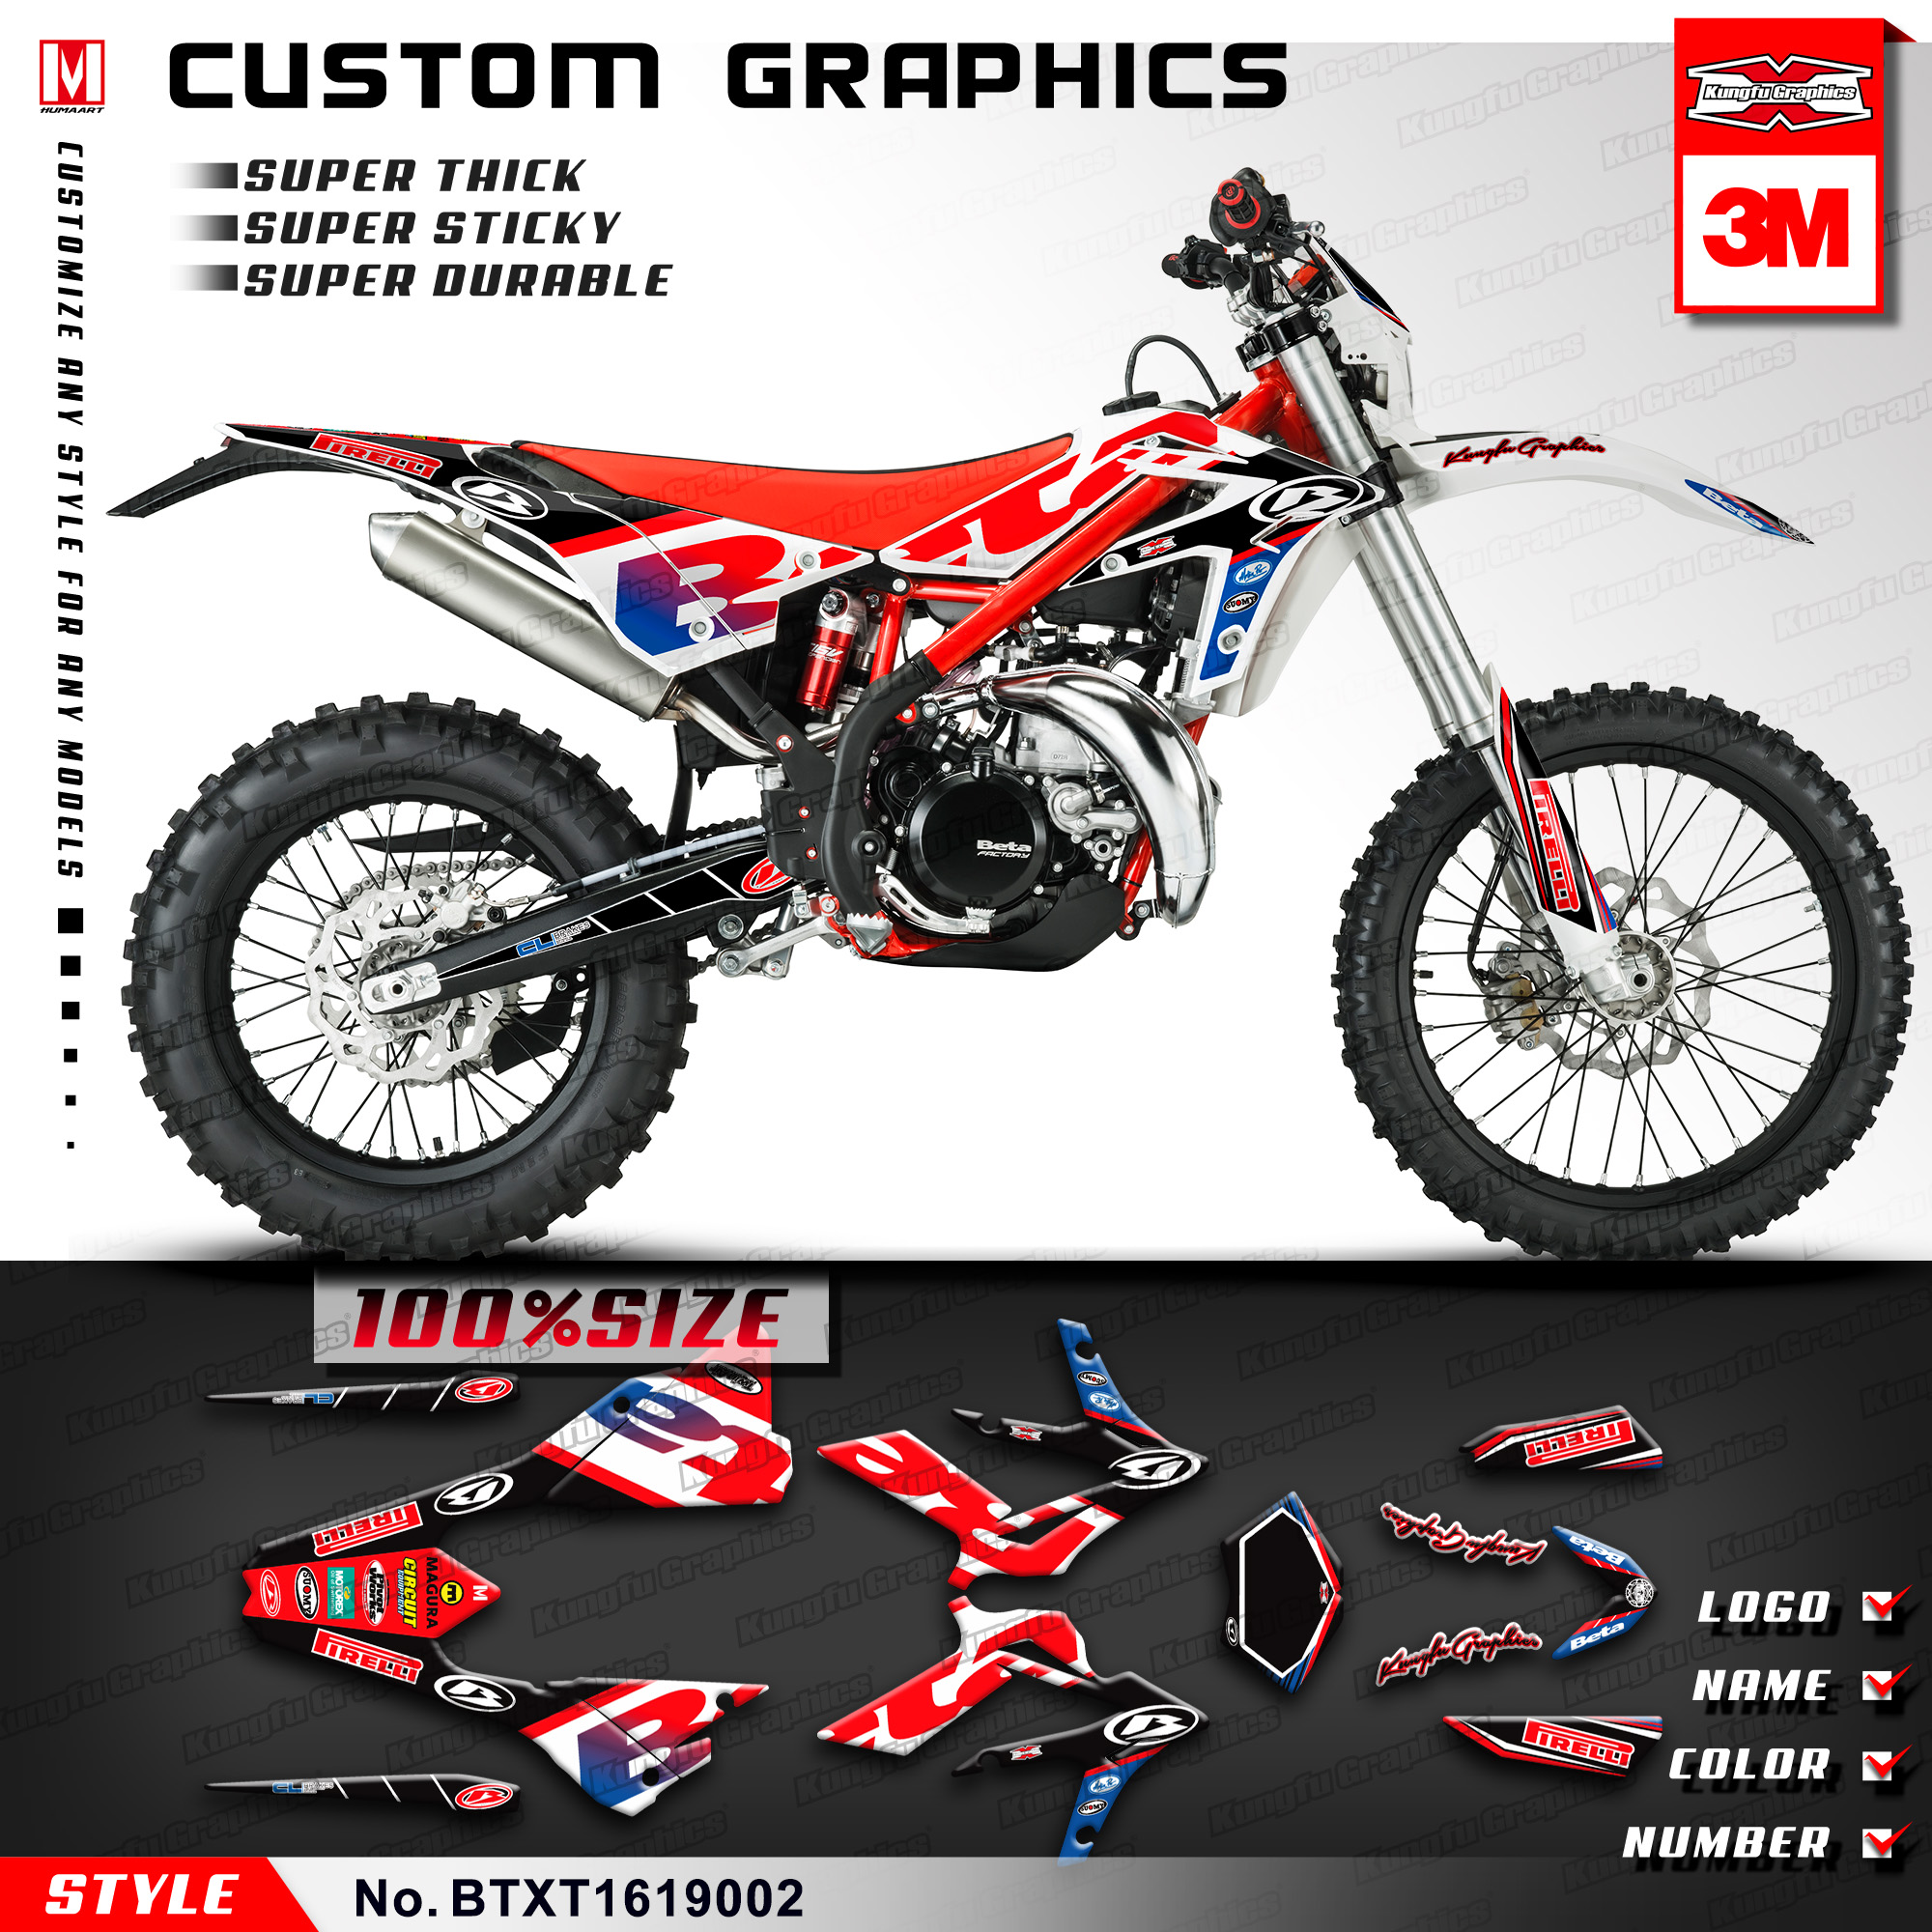 Kungfu graphics motocross racing vinyl decals custom stickers for beta xtrainer 300 2016 2017 2018 2019 style no btxt1619002